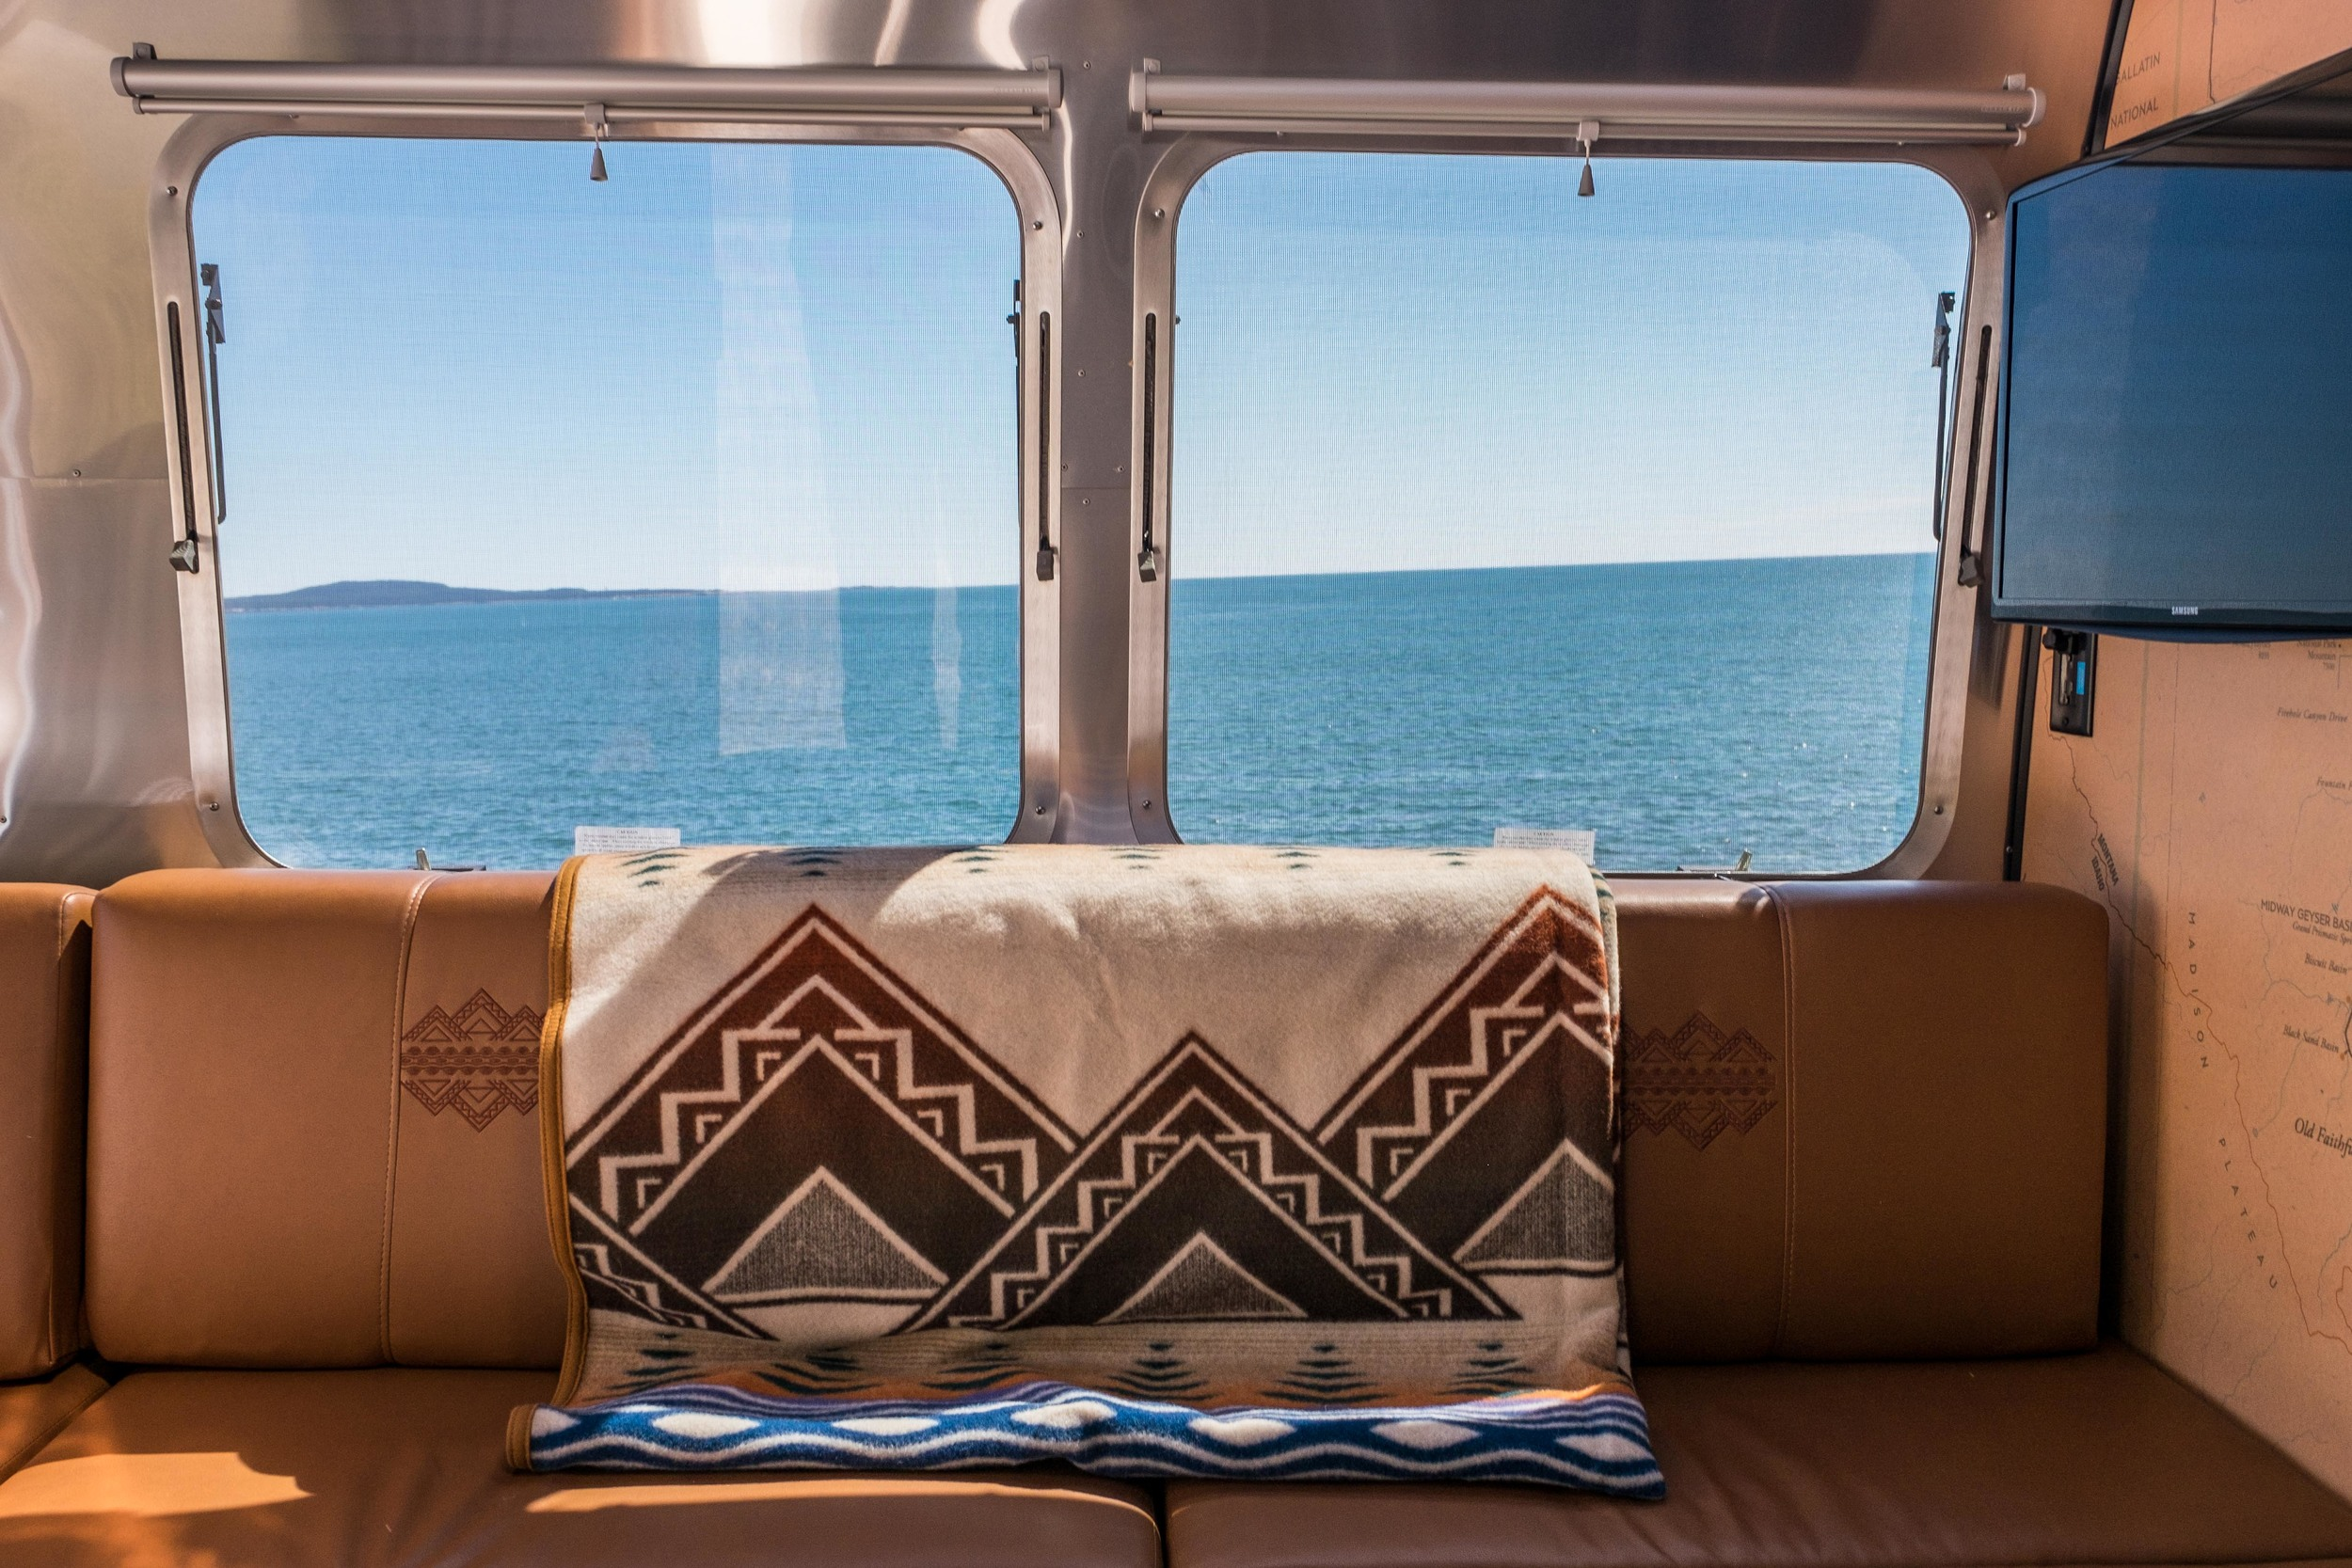 Pendleton blankets are a work of art and are sold at most of the National Park Concessioner stores.